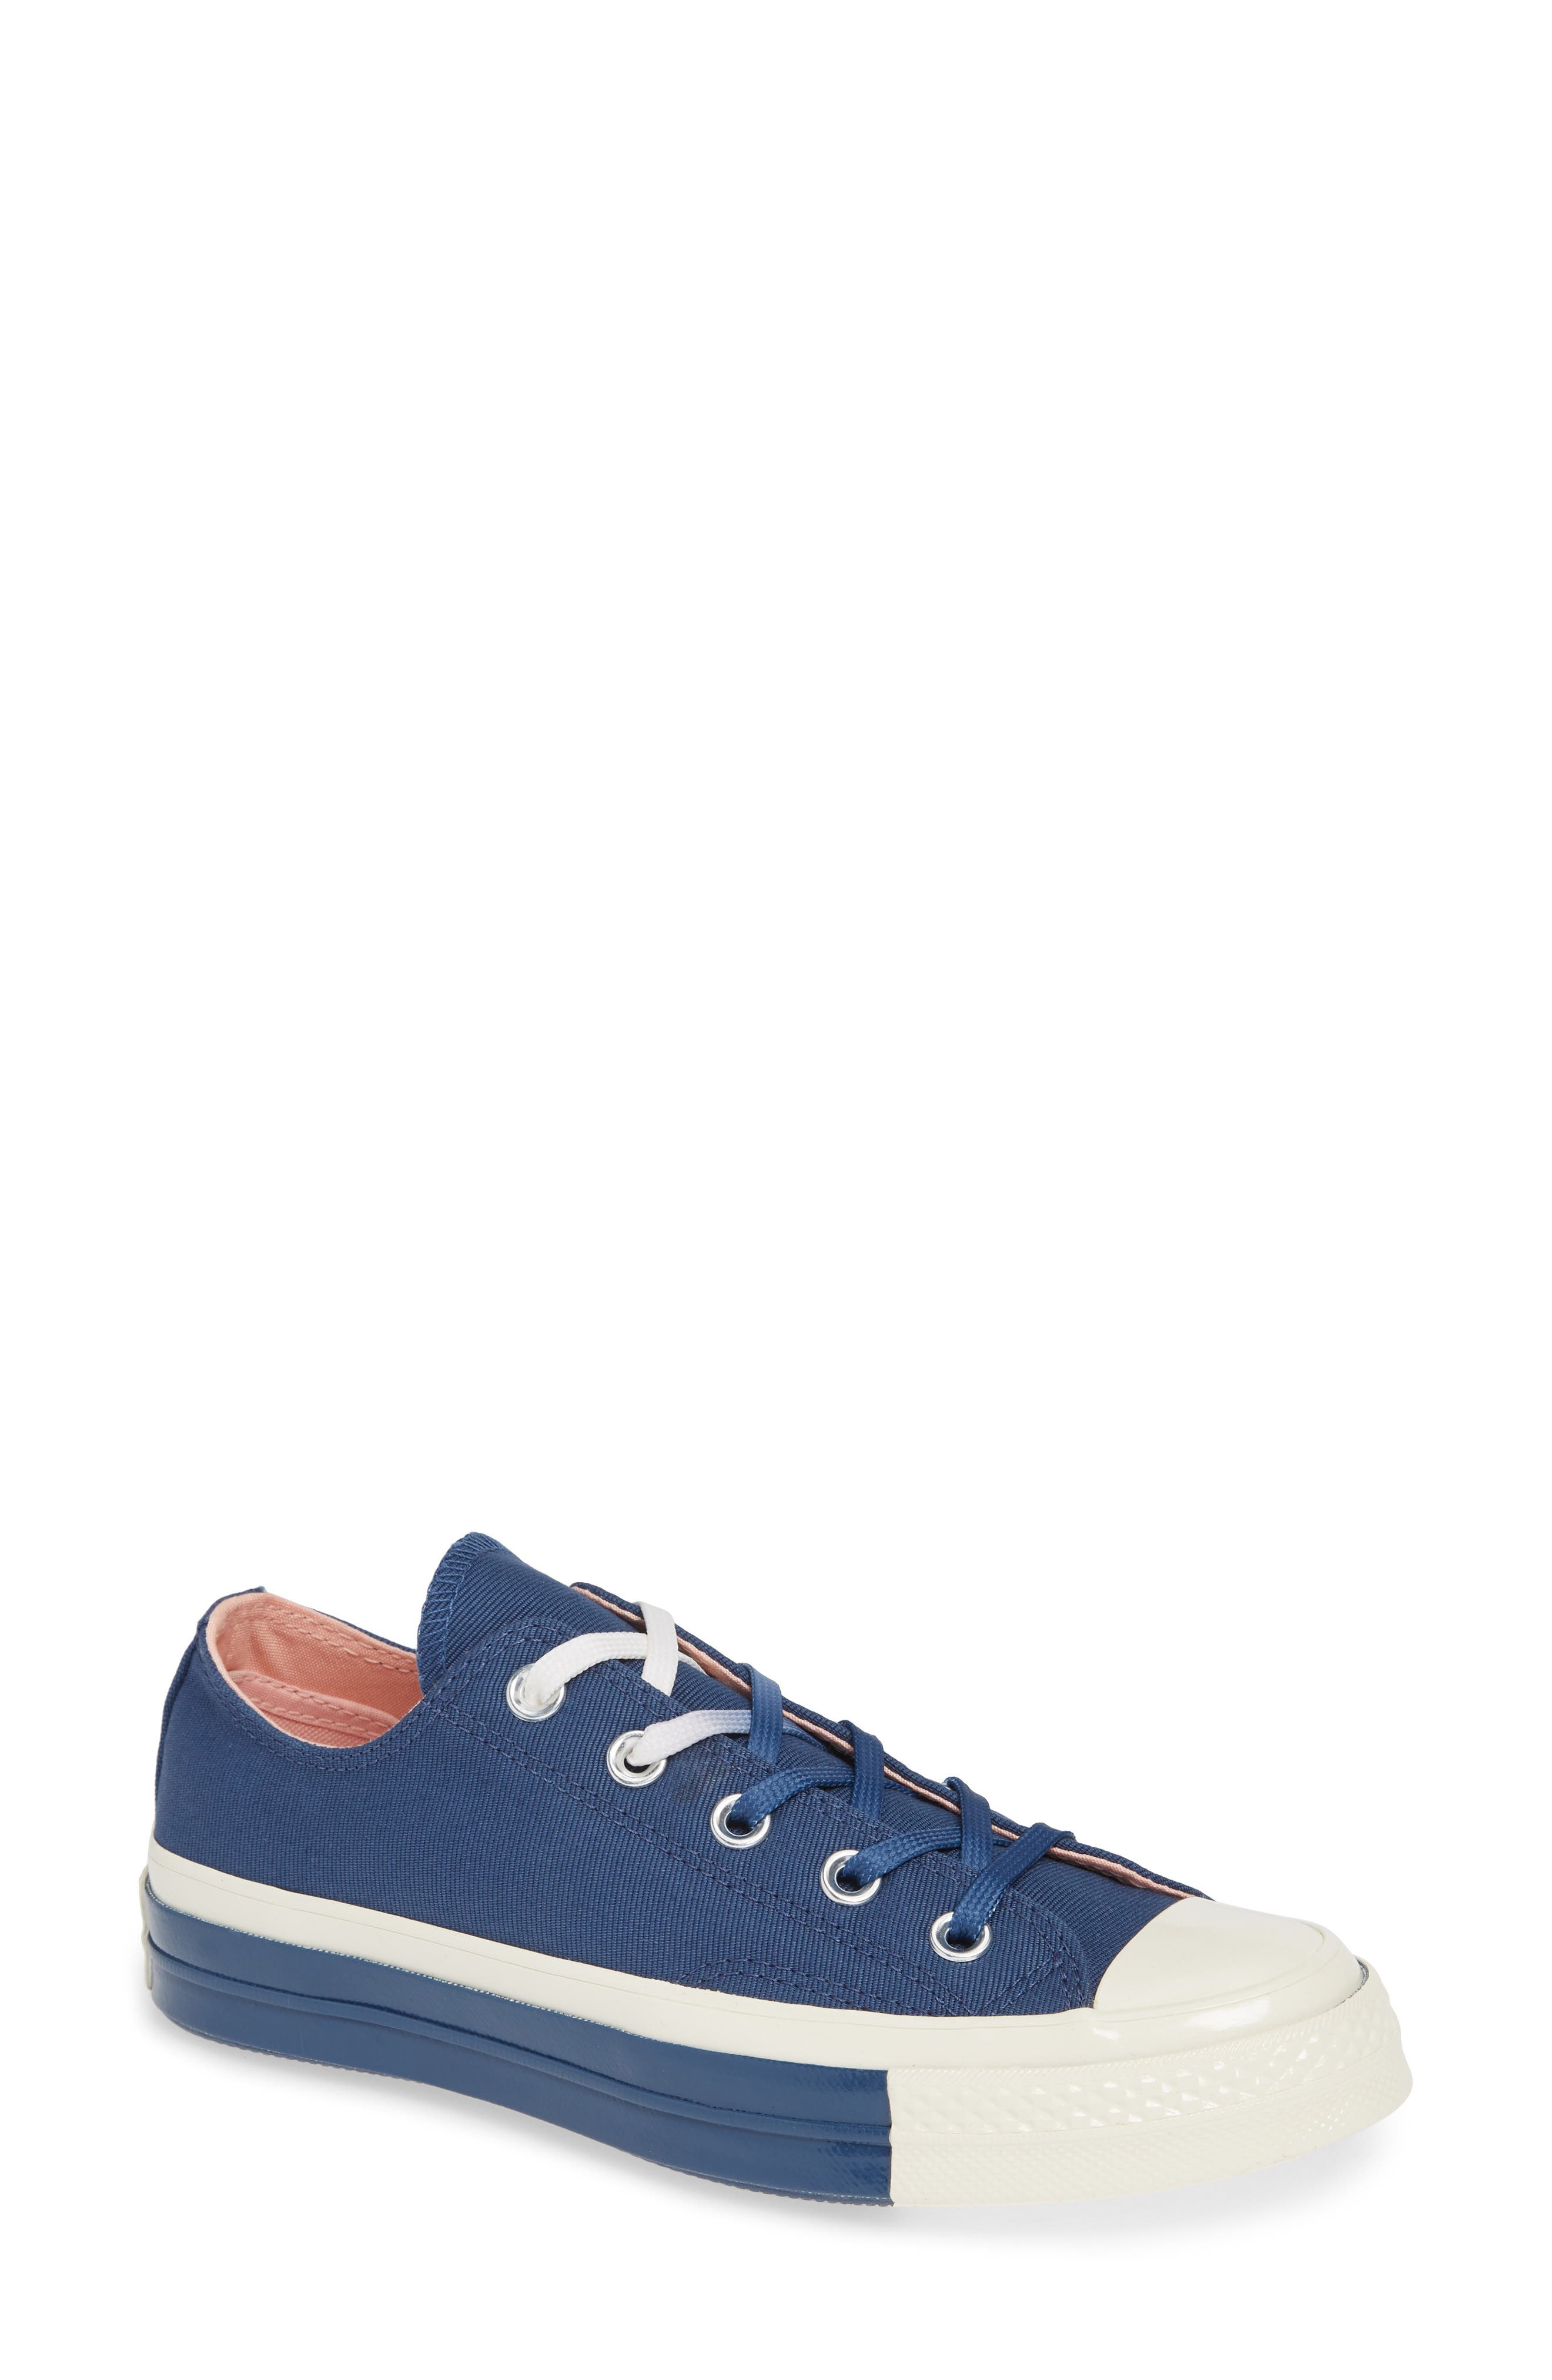 Chuck Taylor<sup>®</sup> All Star<sup>®</sup> 70 Colorblock Low Top Sneaker,                         Main,                         color, MASON BLUE